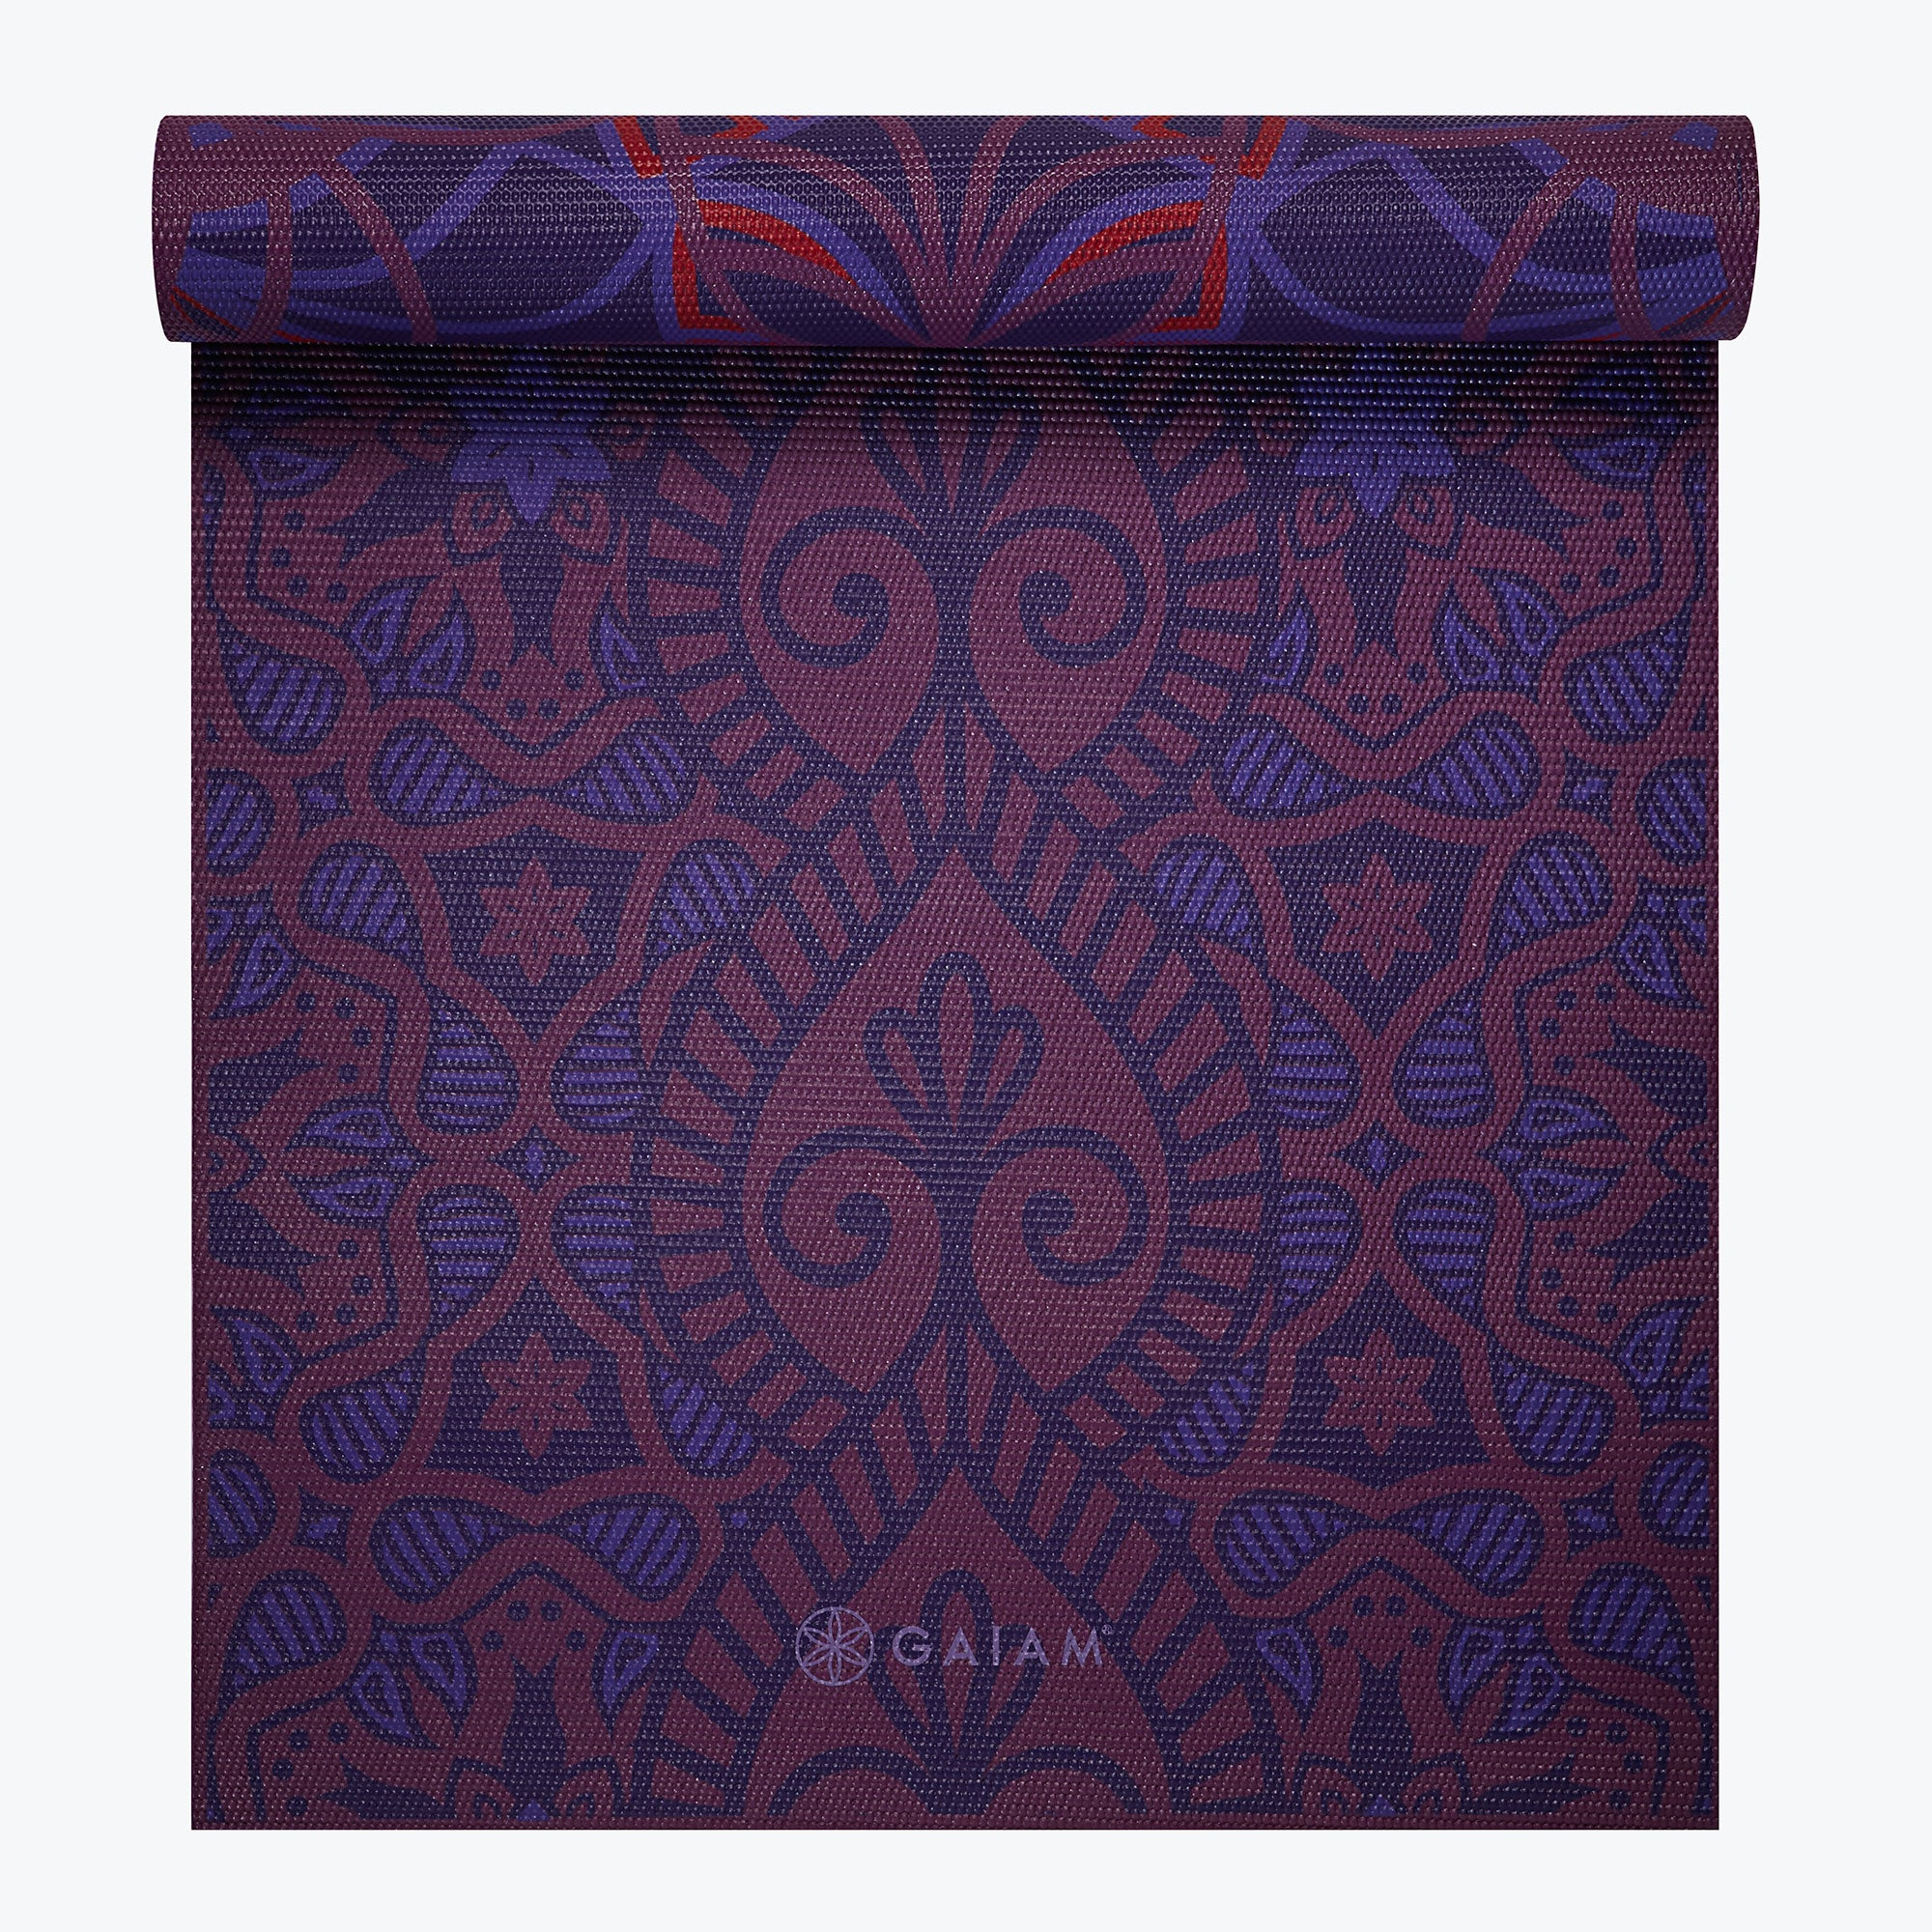 Image of Reversible Divinity Yoga Mat (6mm)